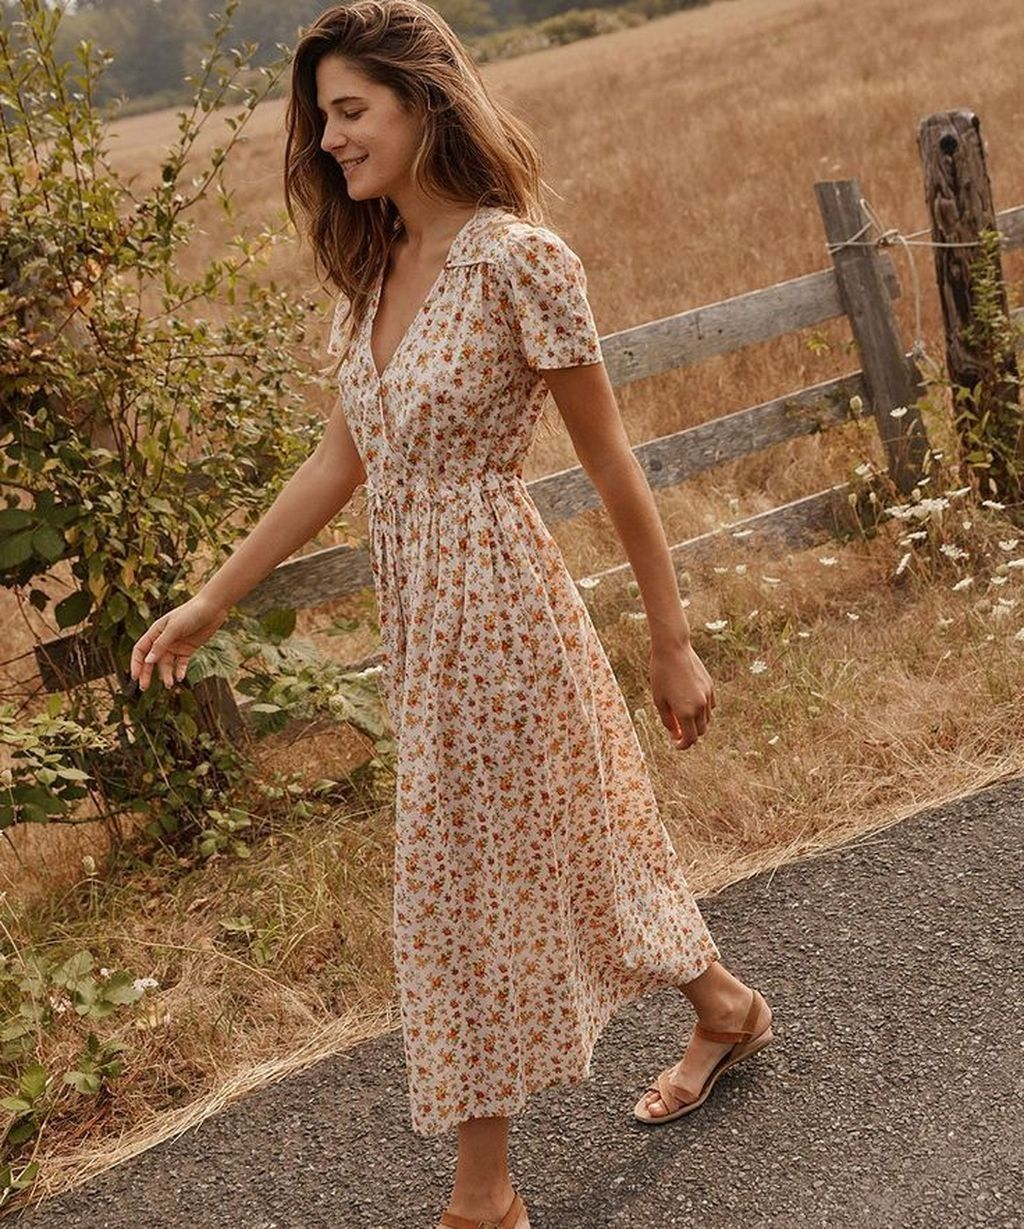 30 Trendy Summer Dress Ideas You Can Wear Now Trendy Dresses Summer Hippie Style Clothing Modest Dresses [ 1229 x 1024 Pixel ]